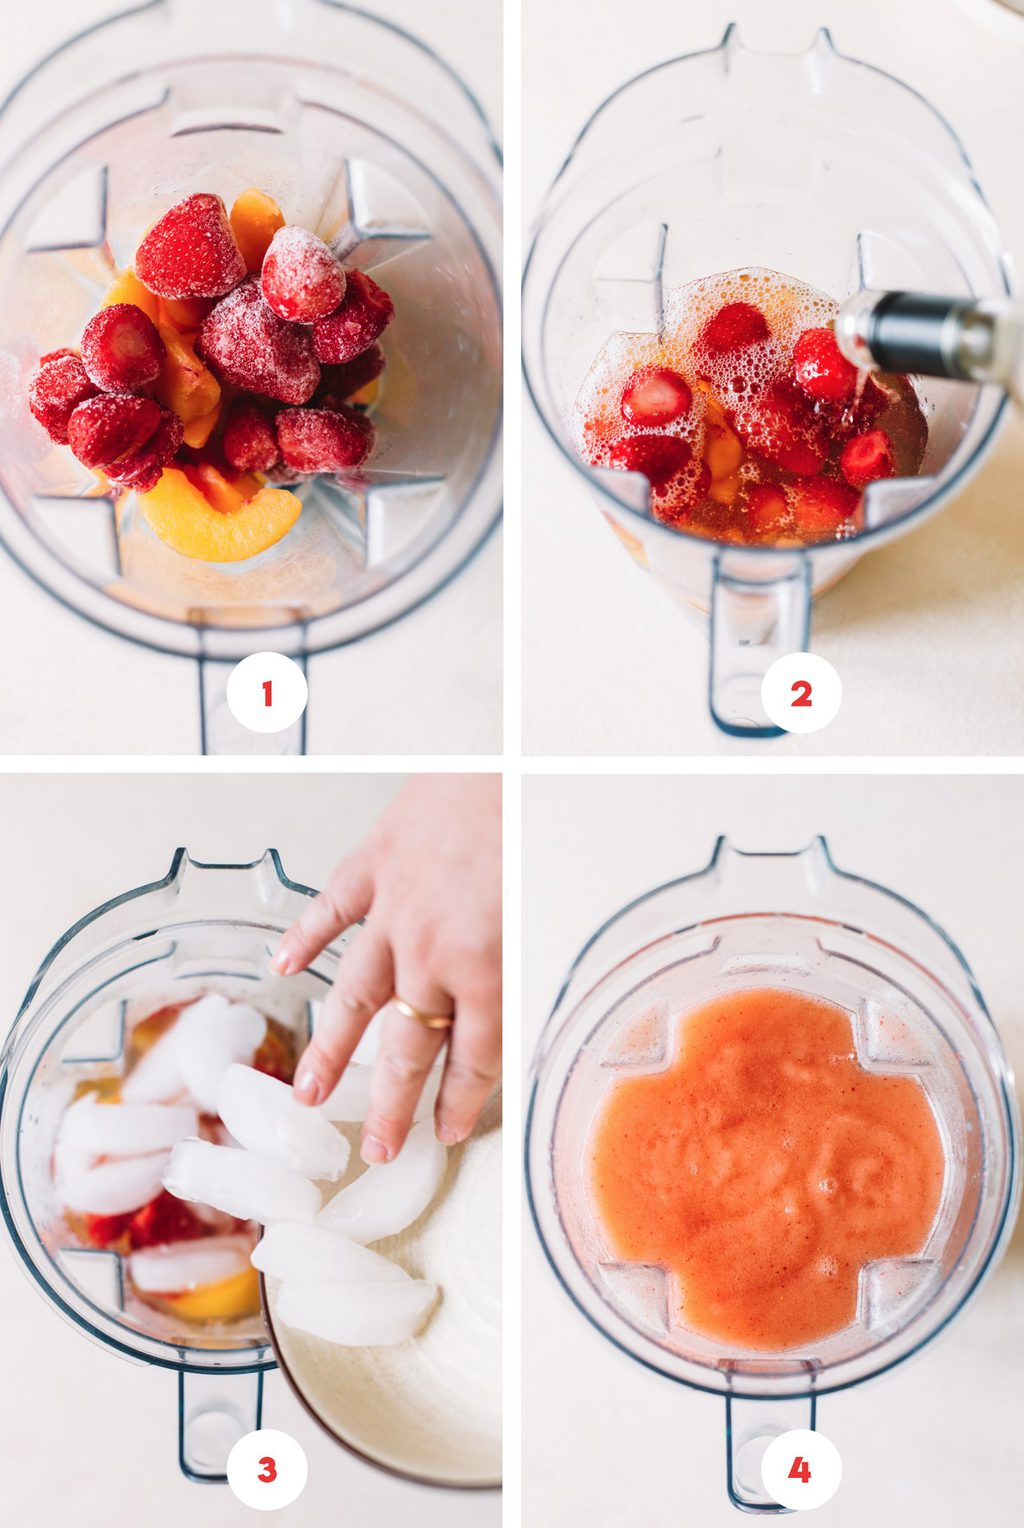 frozen peaches and strawberries in blender, pouring white wine into blender, finished peach slushy